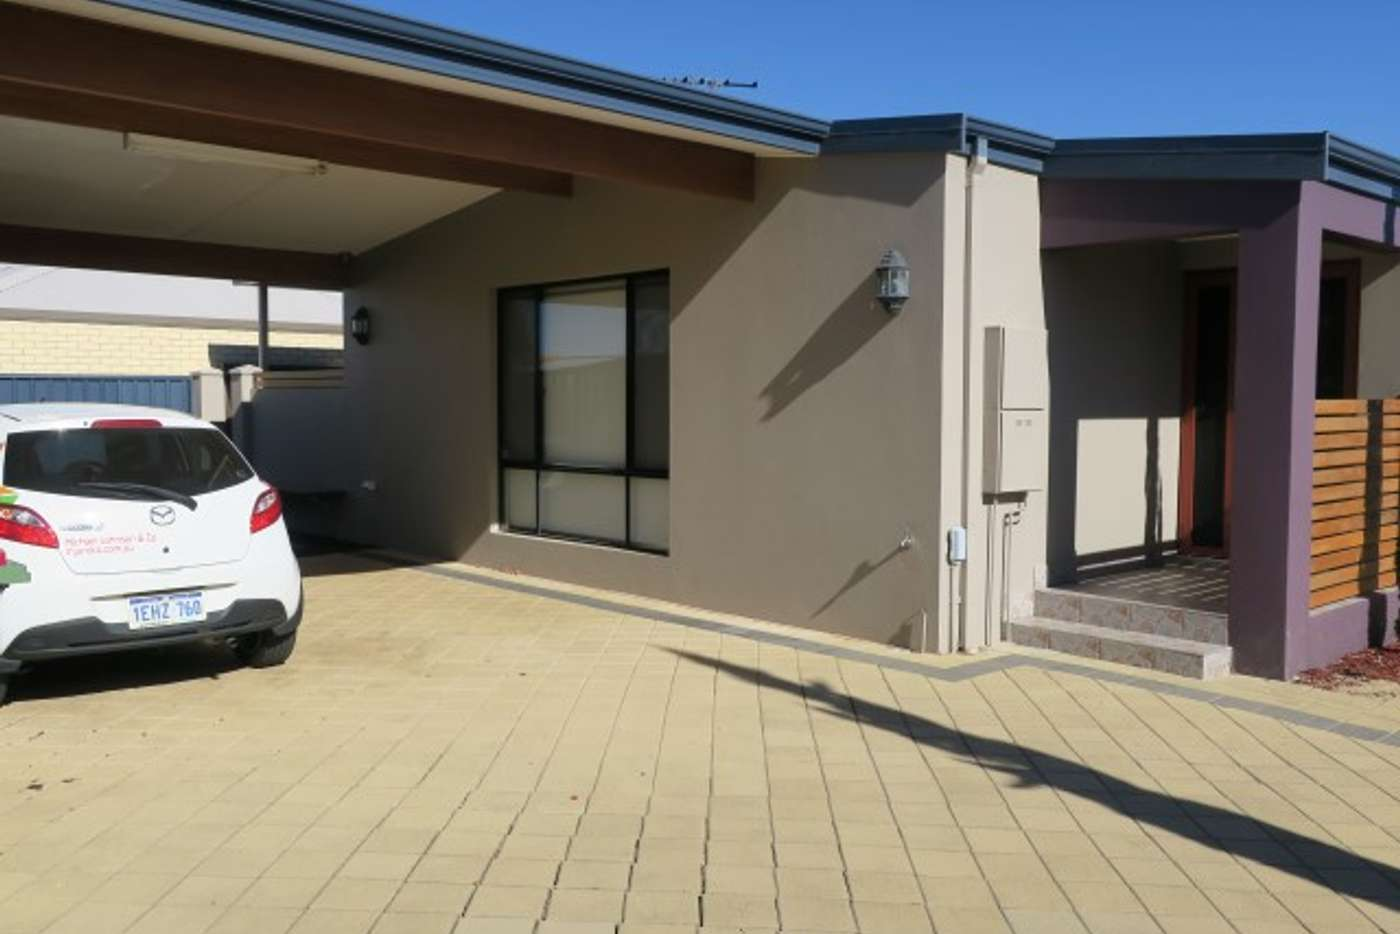 Main view of Homely house listing, 5 Holilond Way, Morley WA 6062